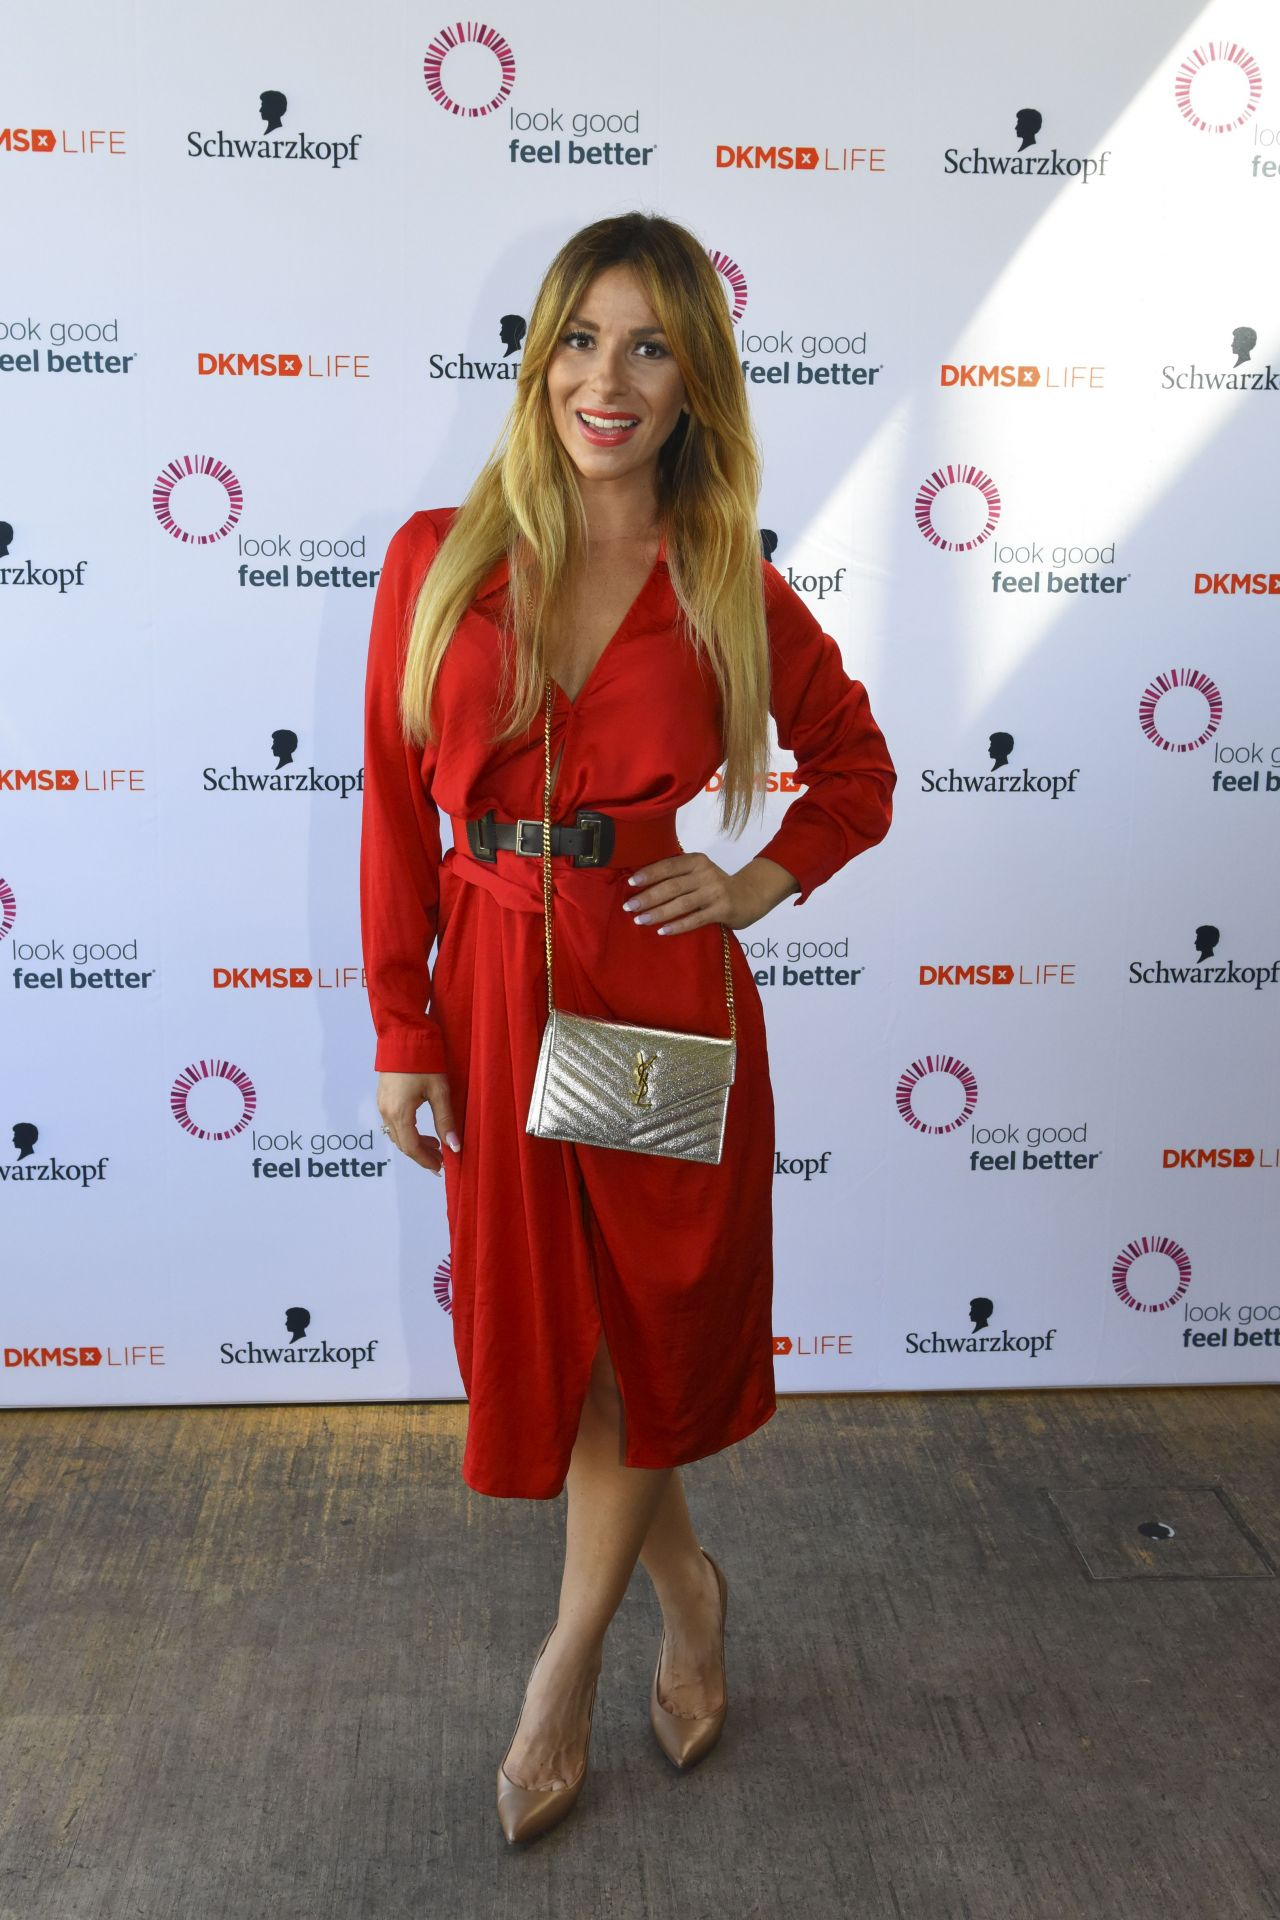 Gulcan kamps dkms life charity ladies lunch in dusseldorf germany naked (67 photos), Feet Celebrity picture